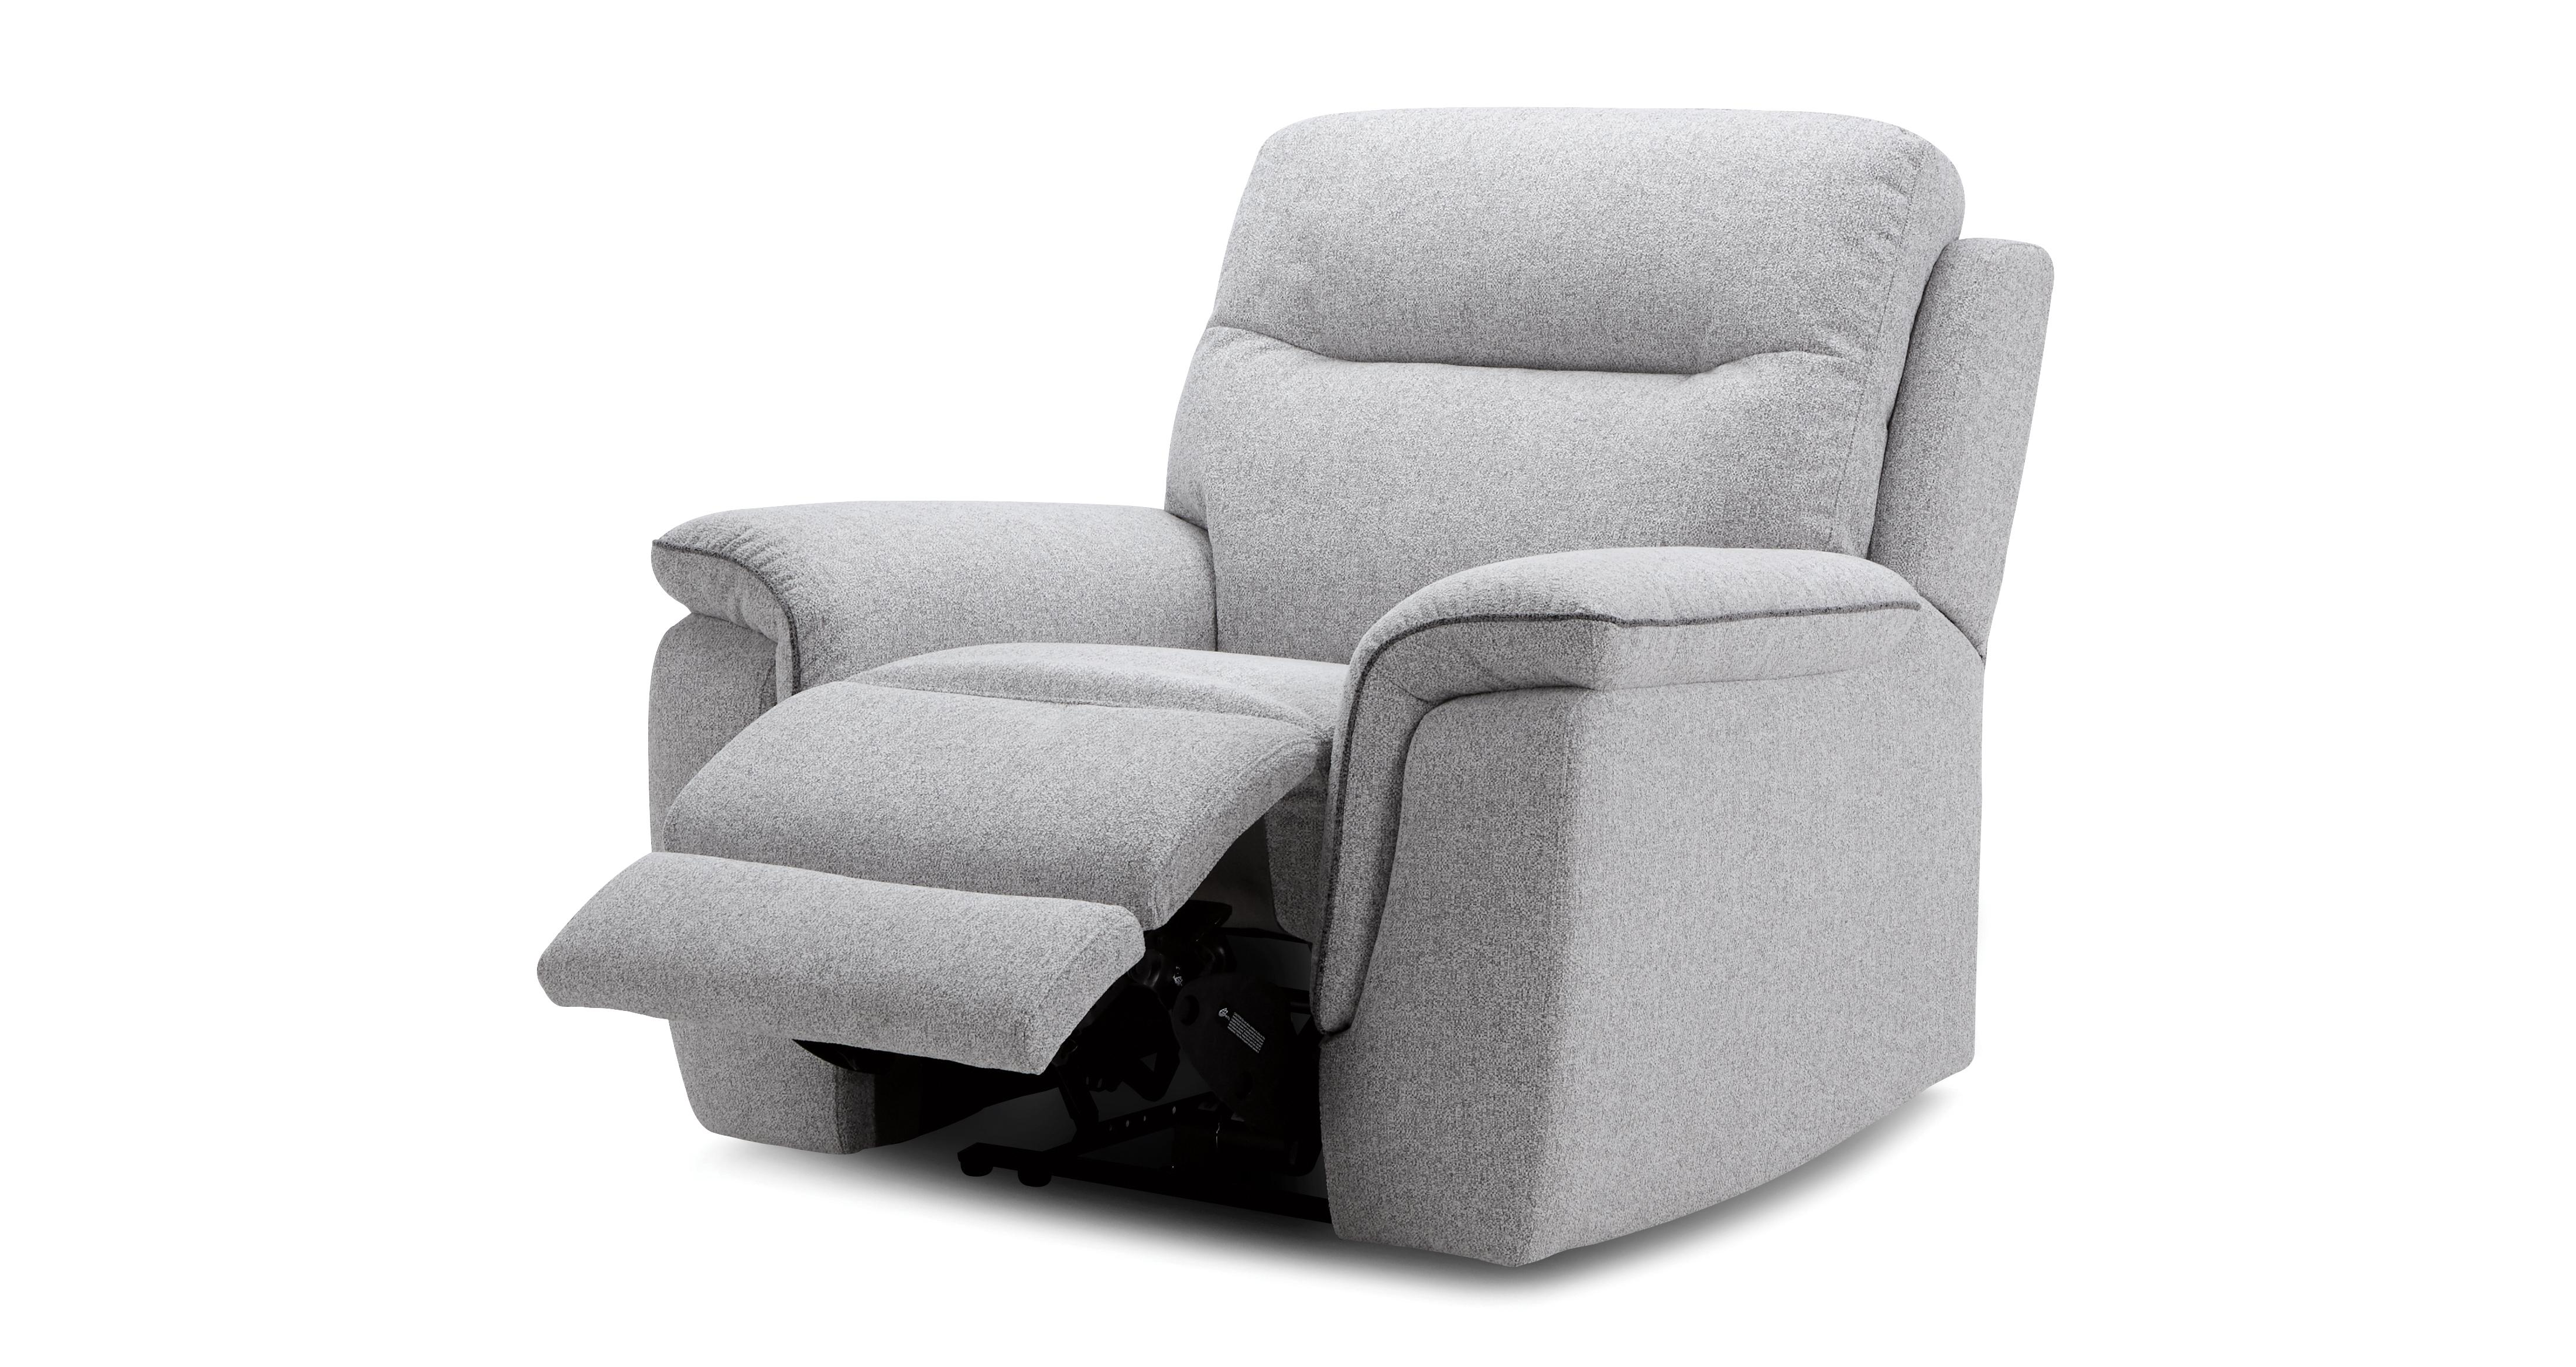 Bootle: Manual Recliner Chair